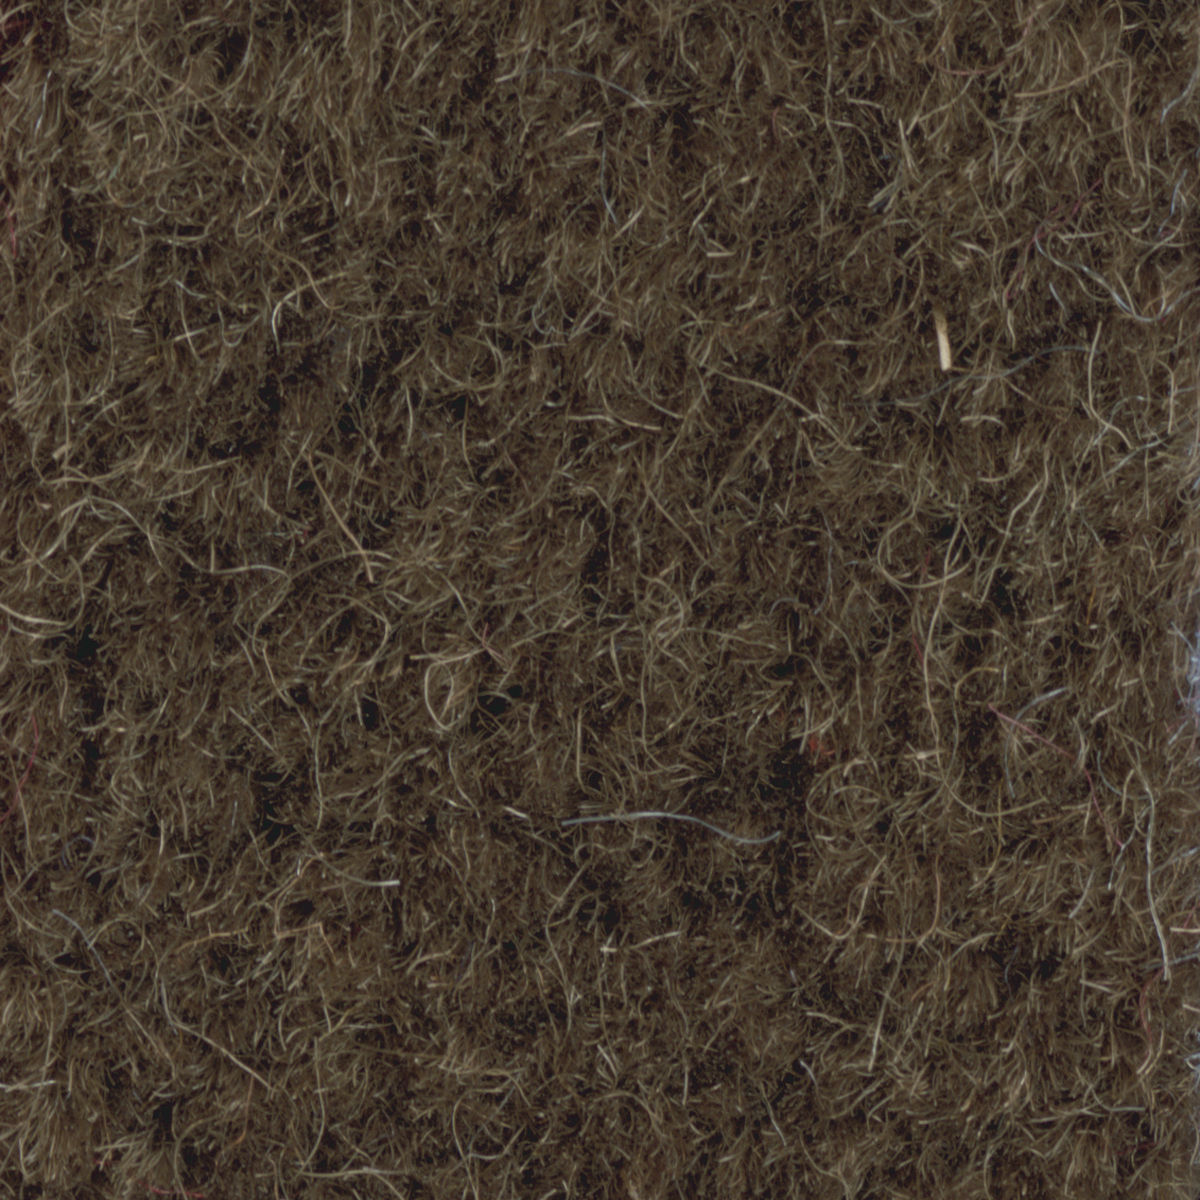 BROWN ENGLISH WILTON II WOOL CARPET